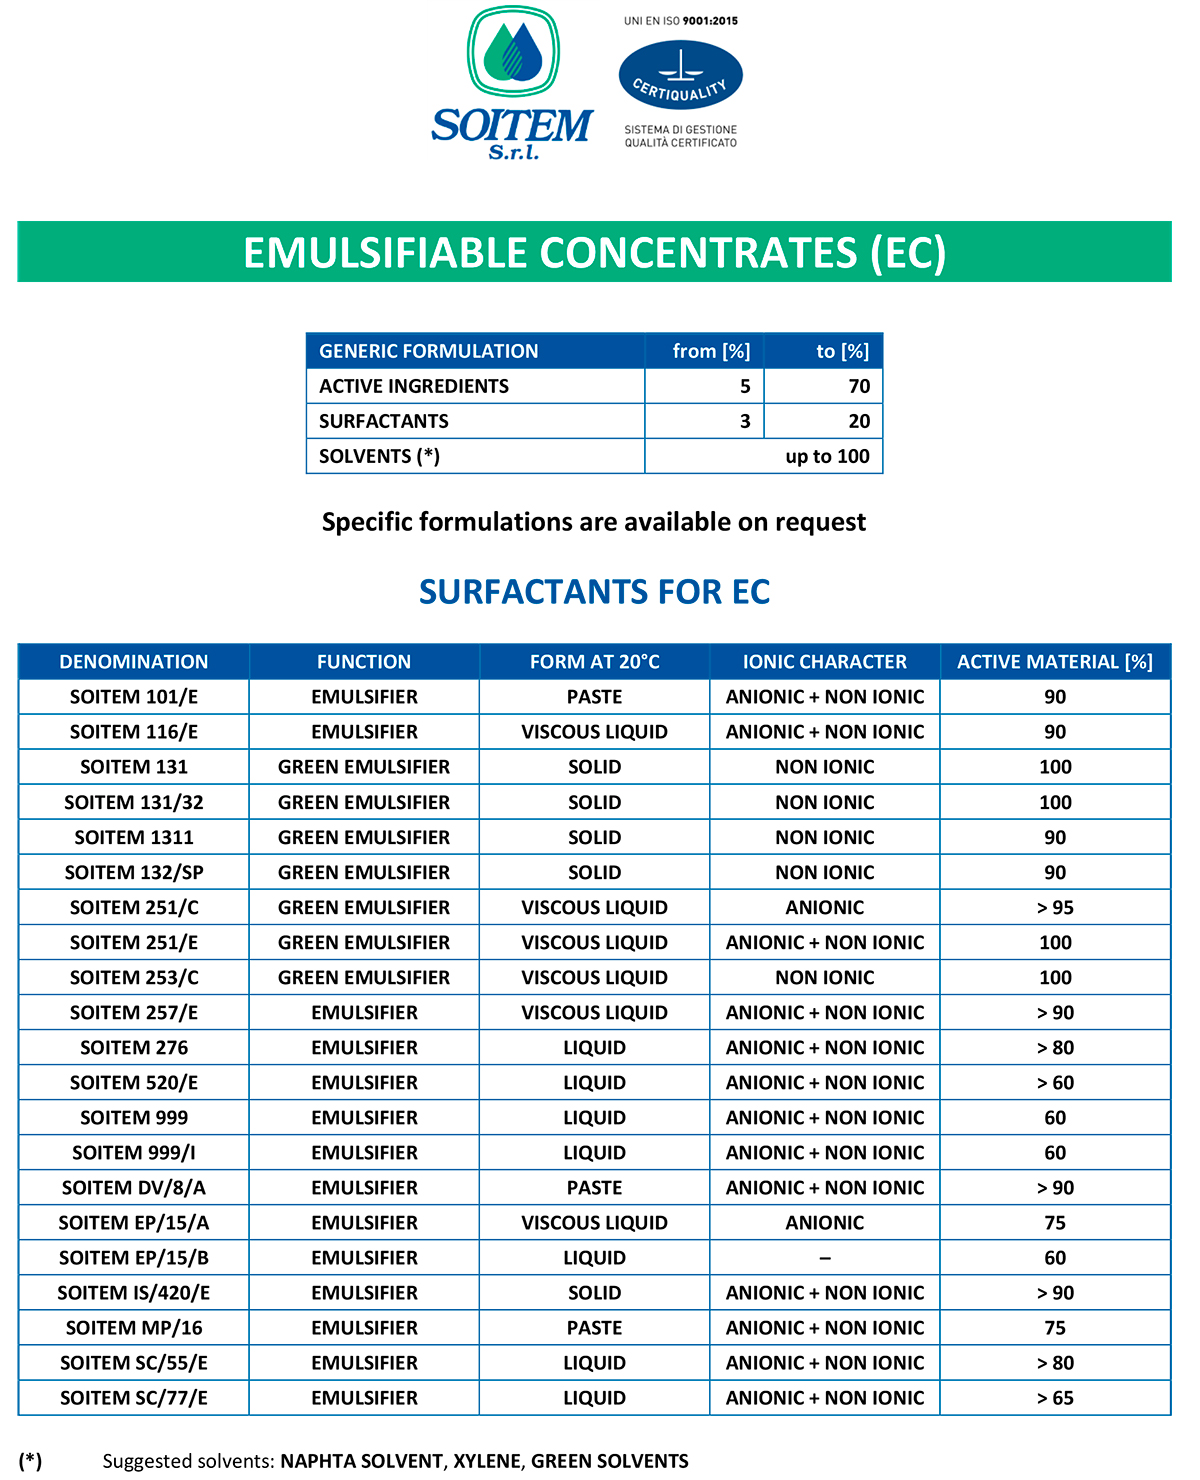 emulsifiable concentrates EC